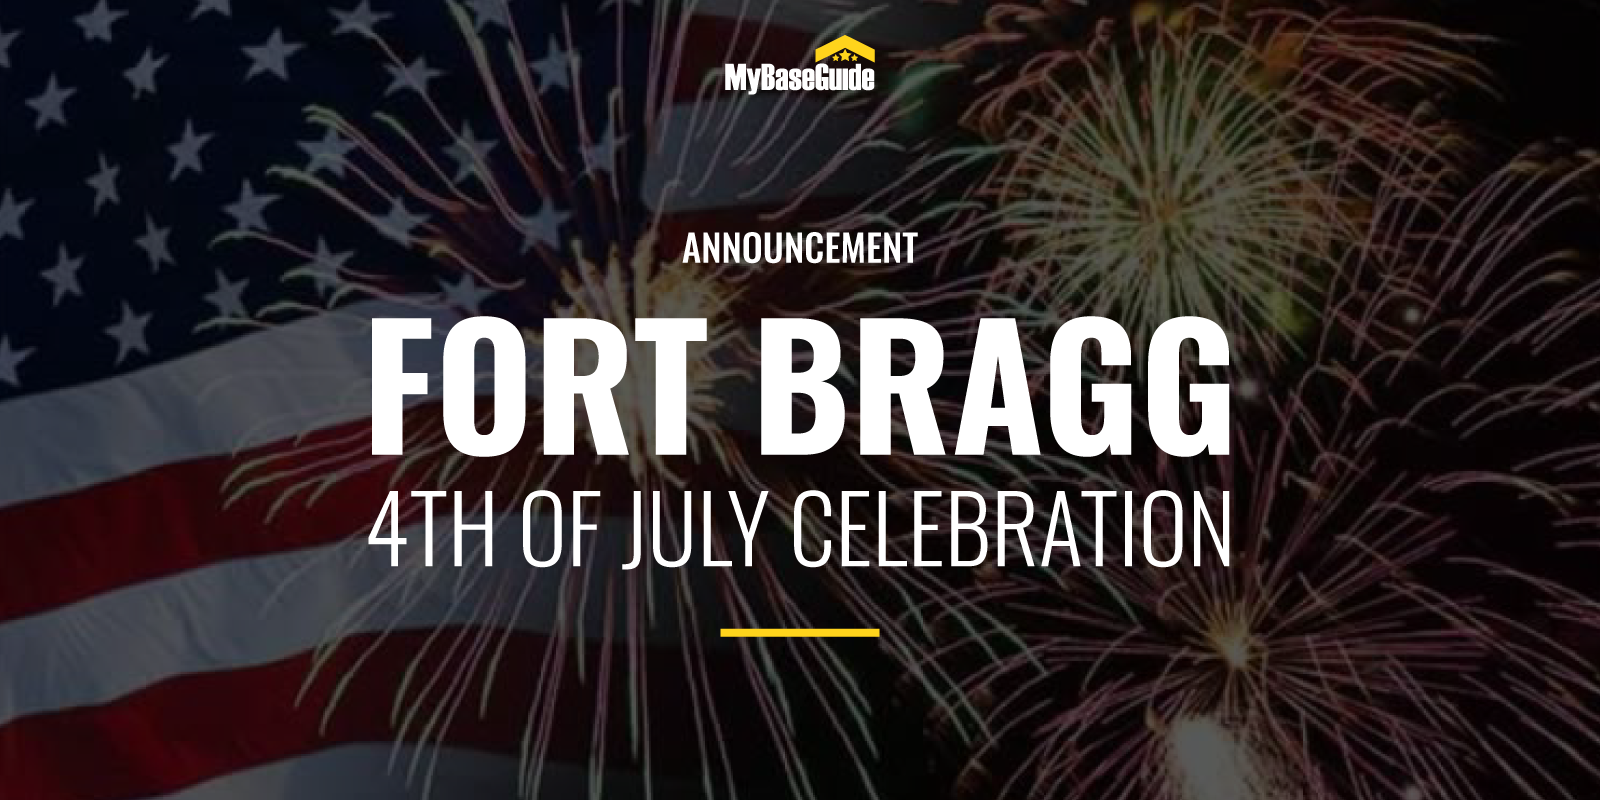 Fort Bragg 4th of July Event